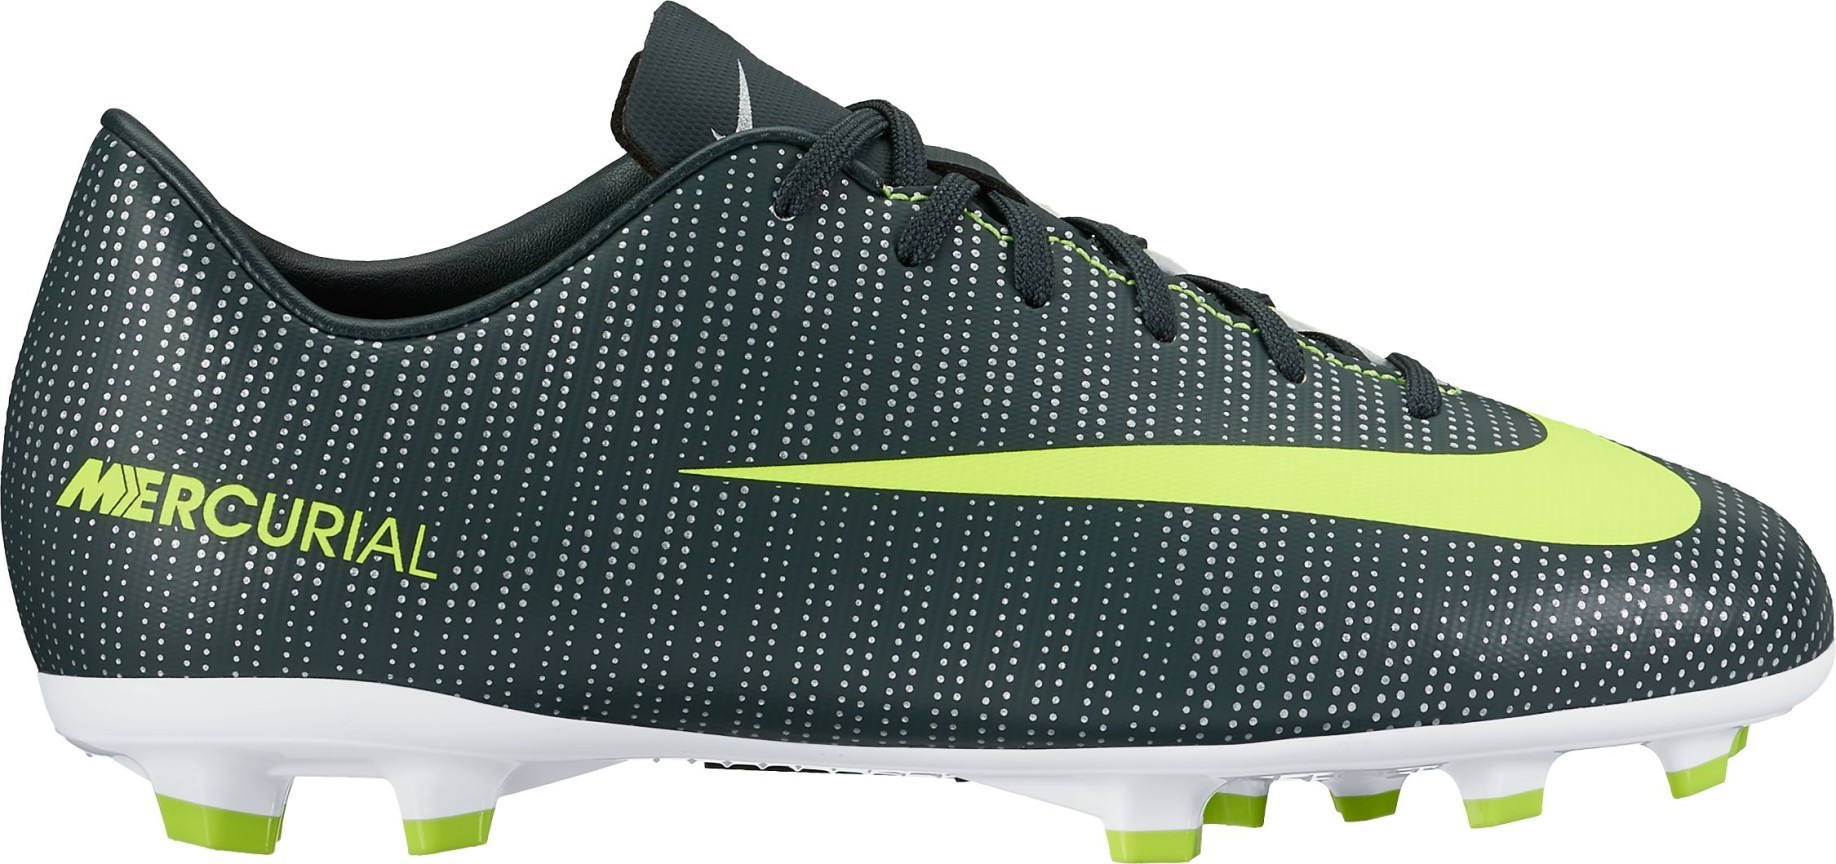 quality design 484f3 cfb4a Football boots Child Nike Mercurial Vapor XI CR7 FG colore Black Yellow -  Nike - SportIT.com